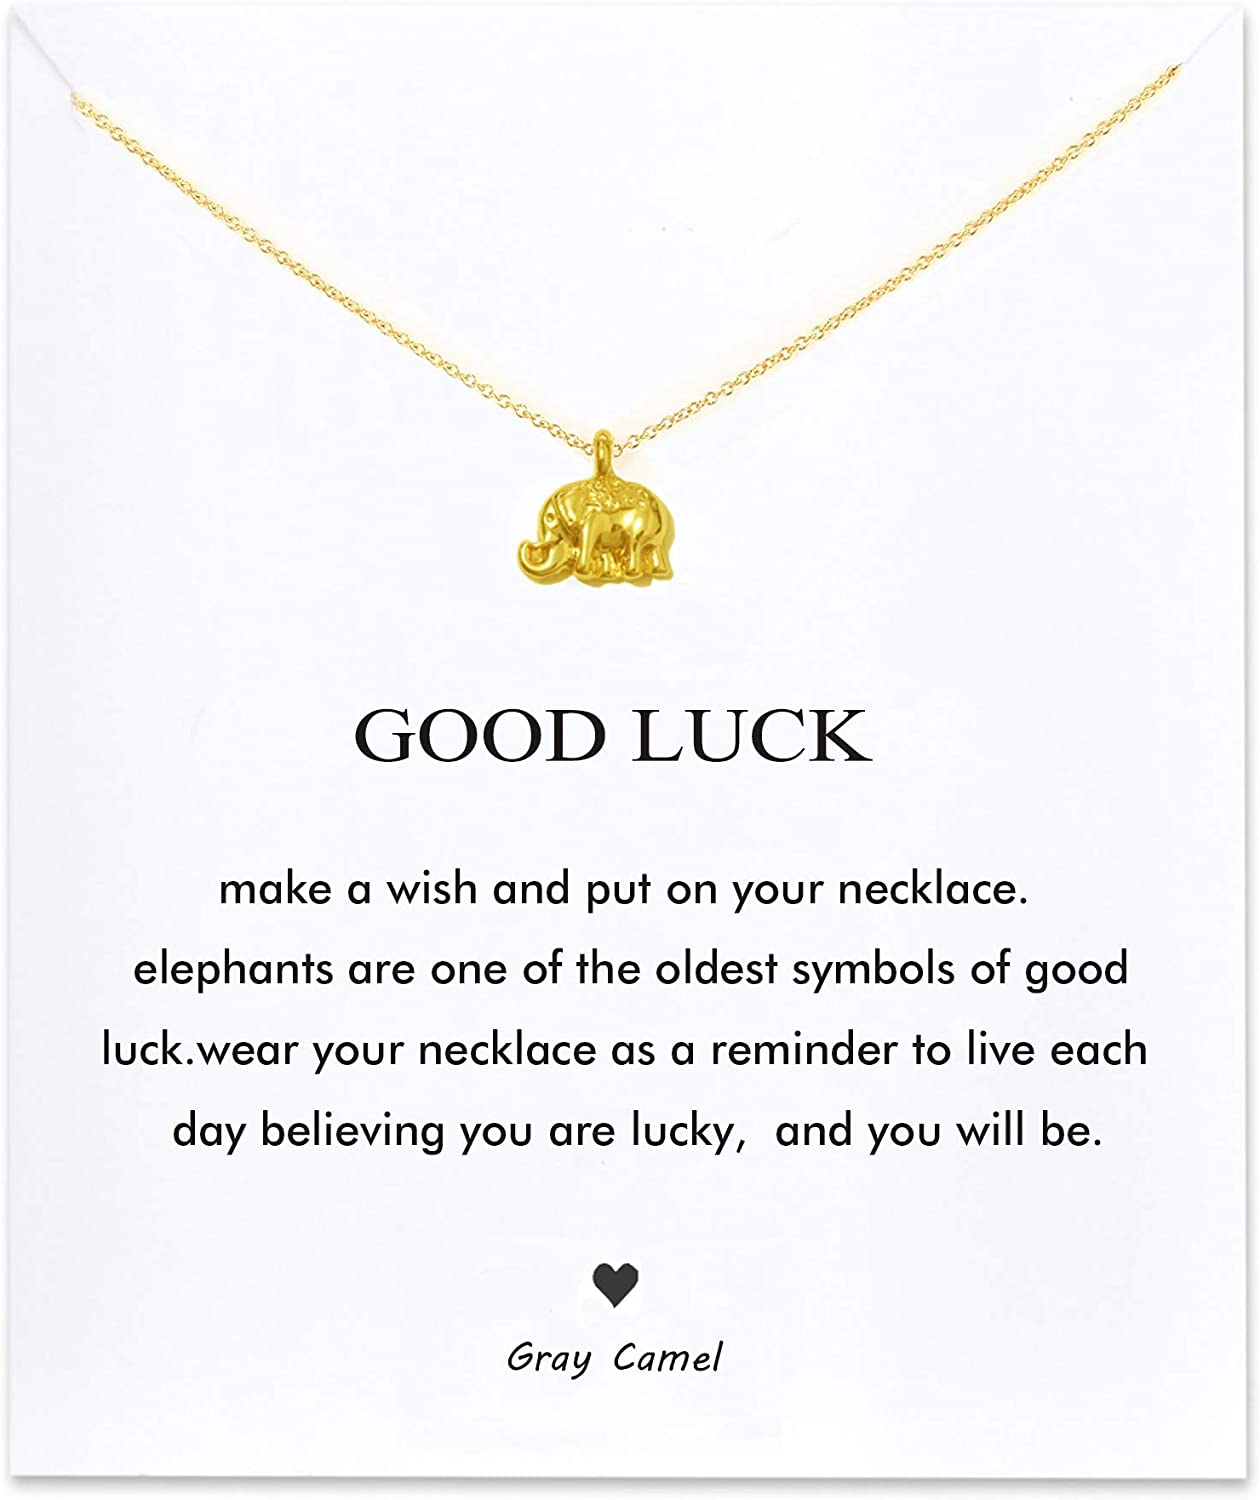 Gray Camel Friendship Clover Necklace Unicorn Good Luck Elephant Necklace with Message Card Gift Card for Women Girl